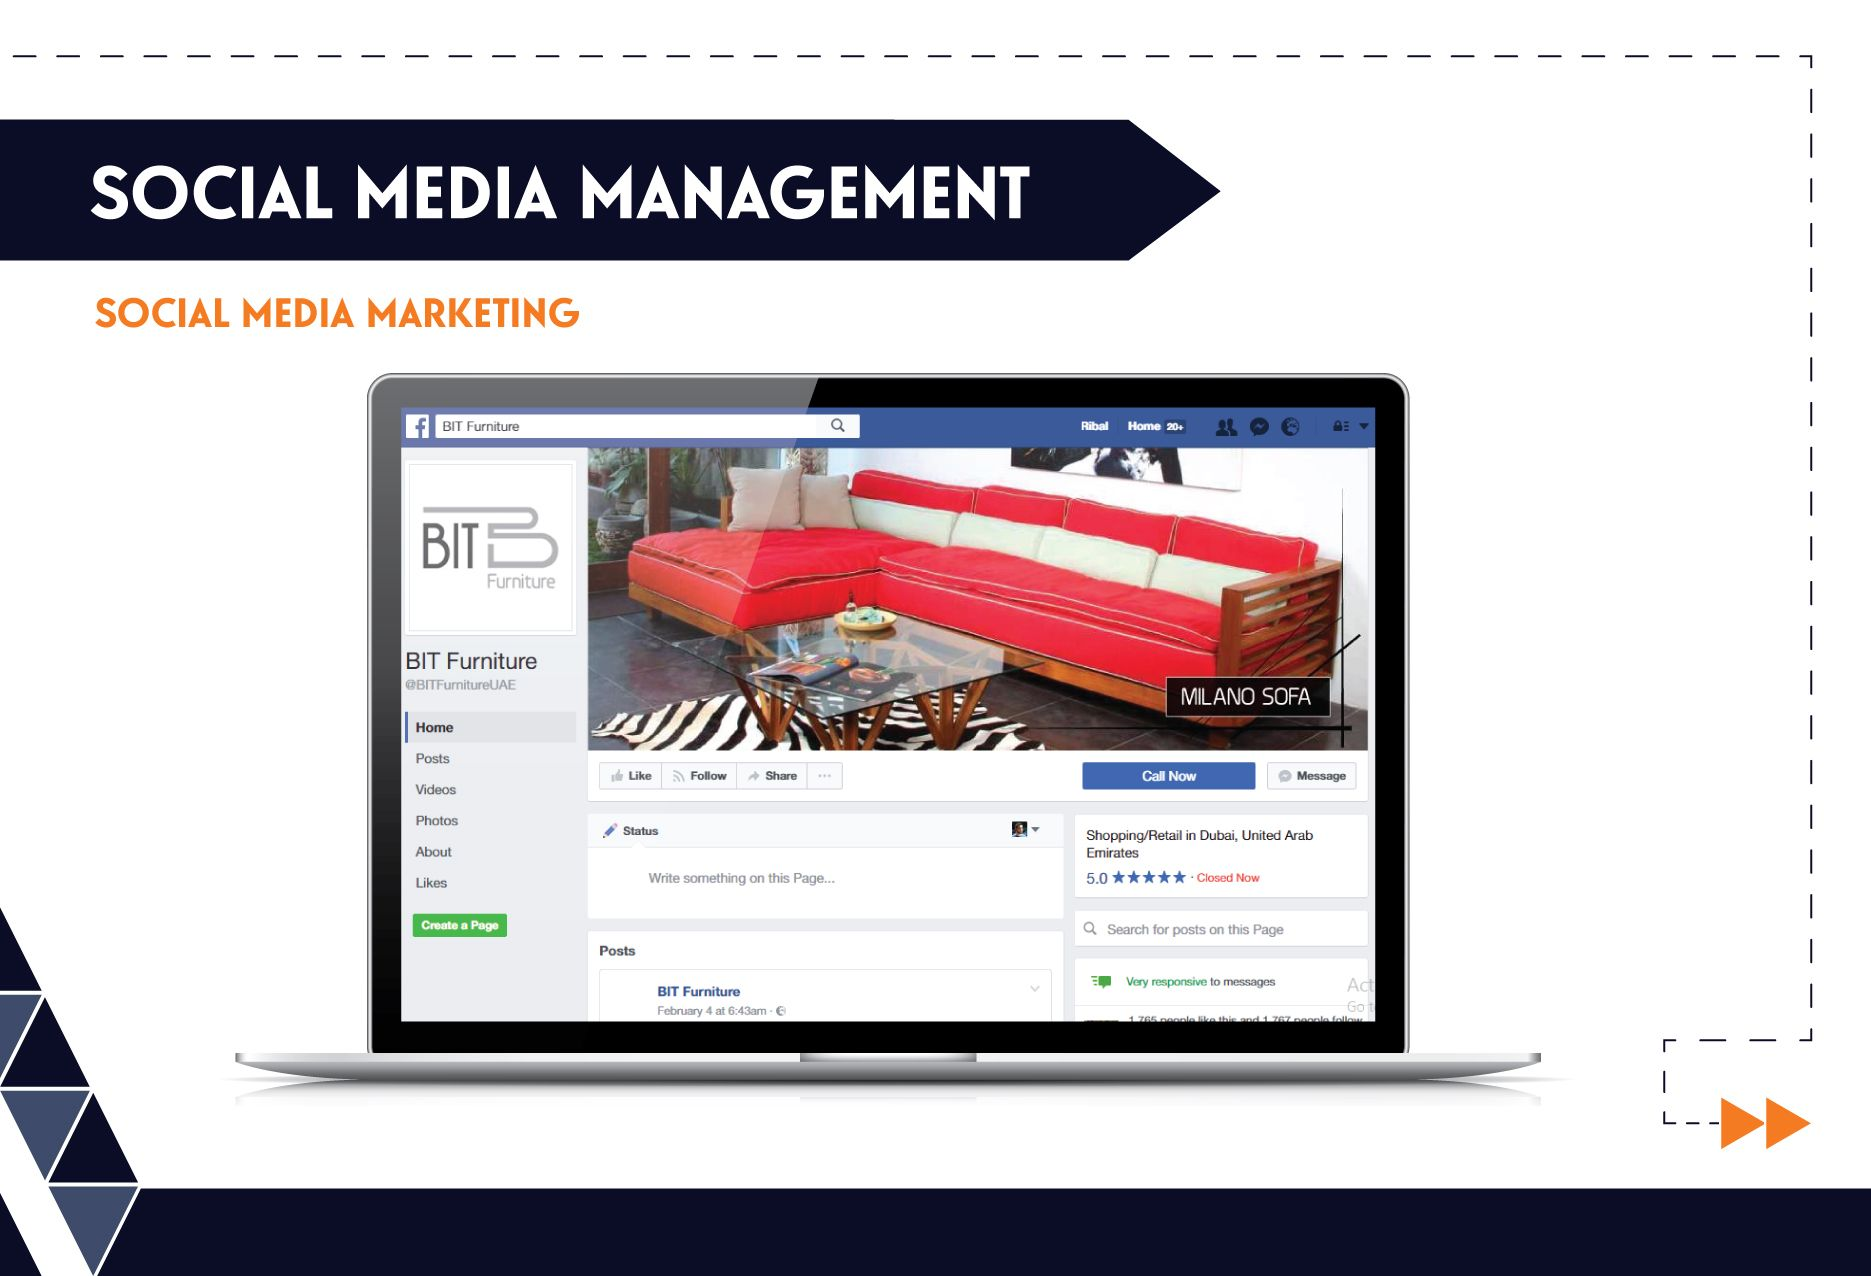 Social Media Management - BIT Furniture